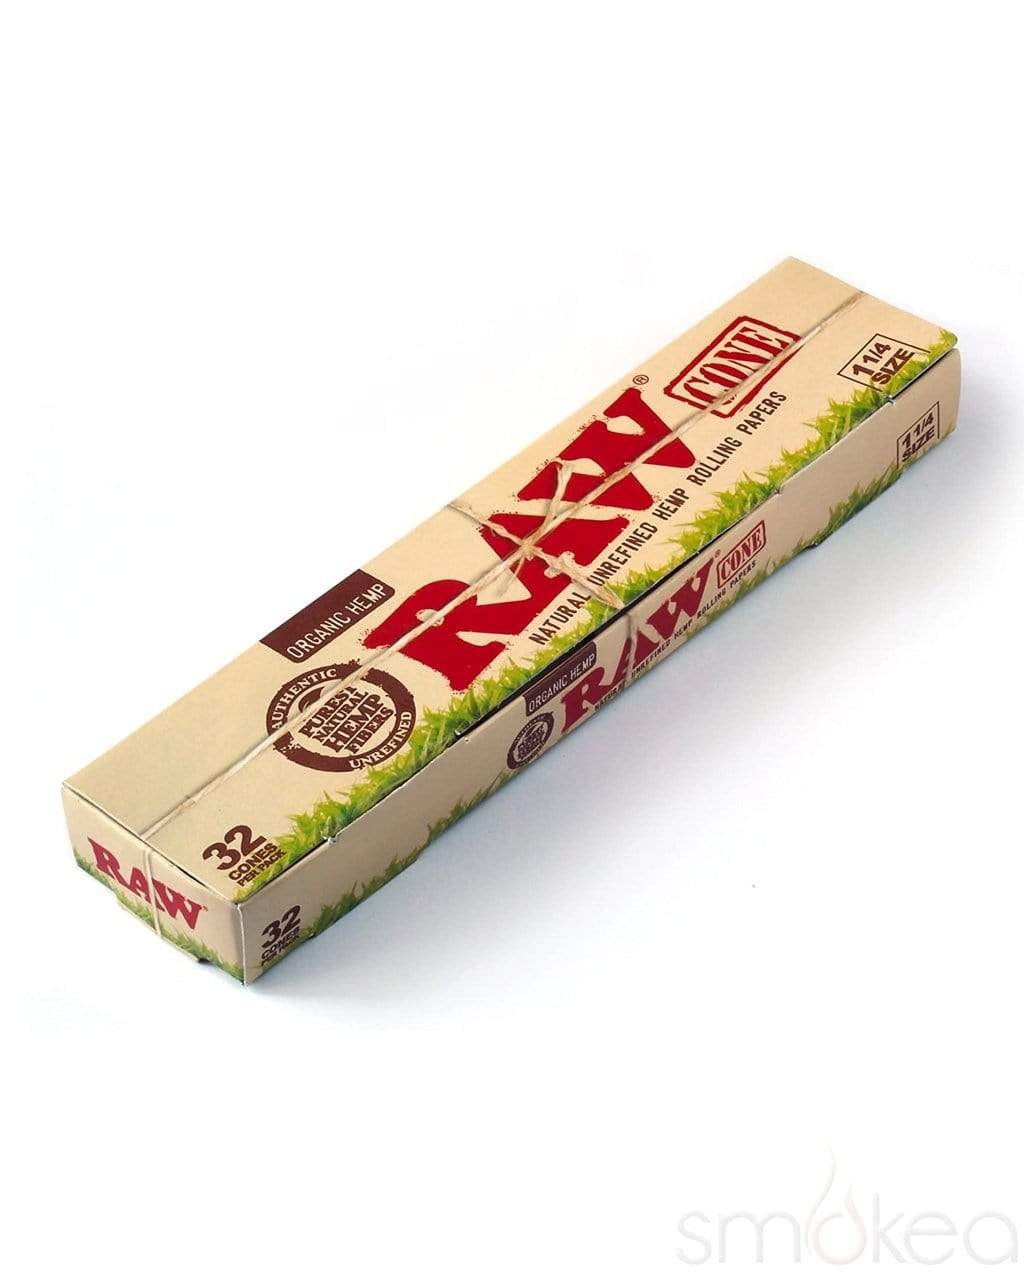 Raw Organic 1 1/4 Pre-Rolled Cones (32-Pack) - SMOKEA